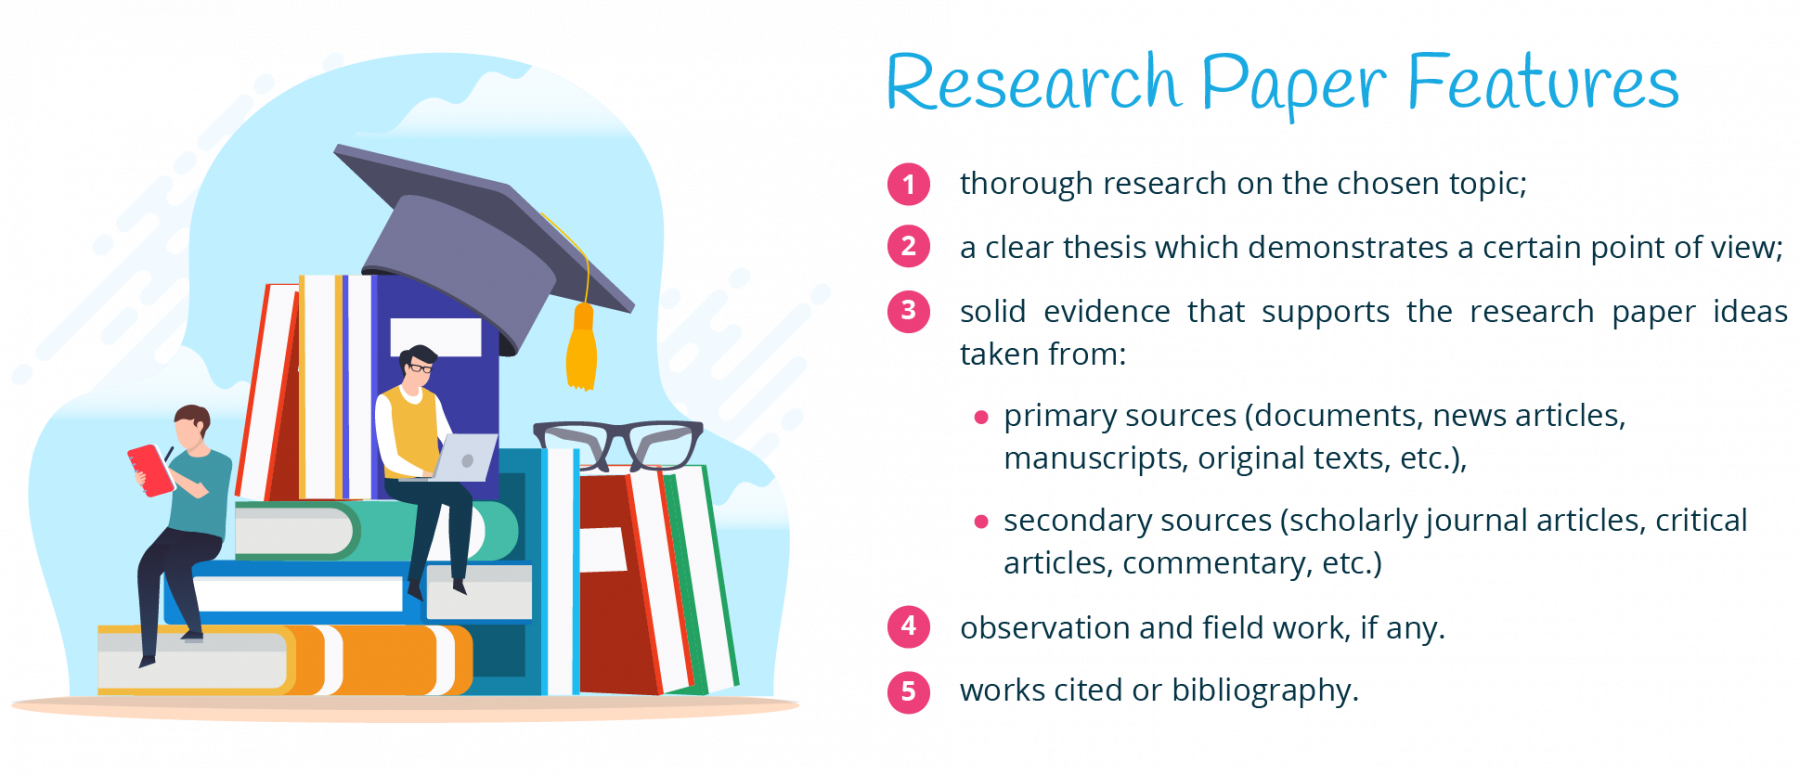 Research paper features